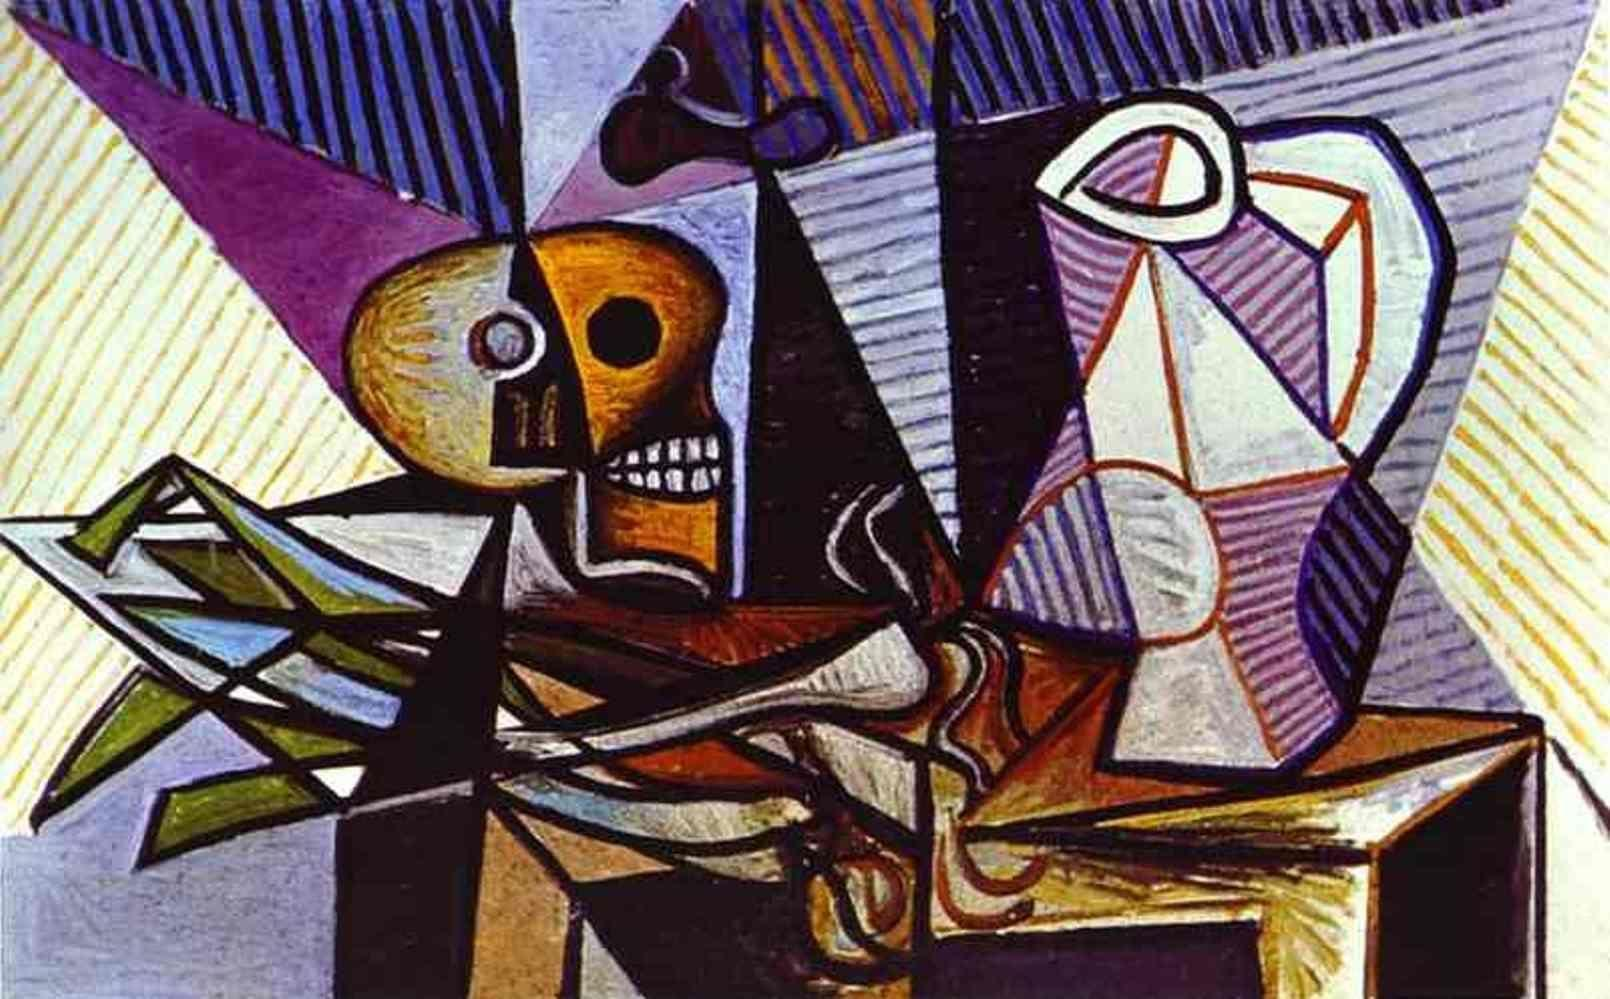 Picasso Wallpapers Wallpaper Cave HD Wallpapers Download Free Images Wallpaper [1000image.com]